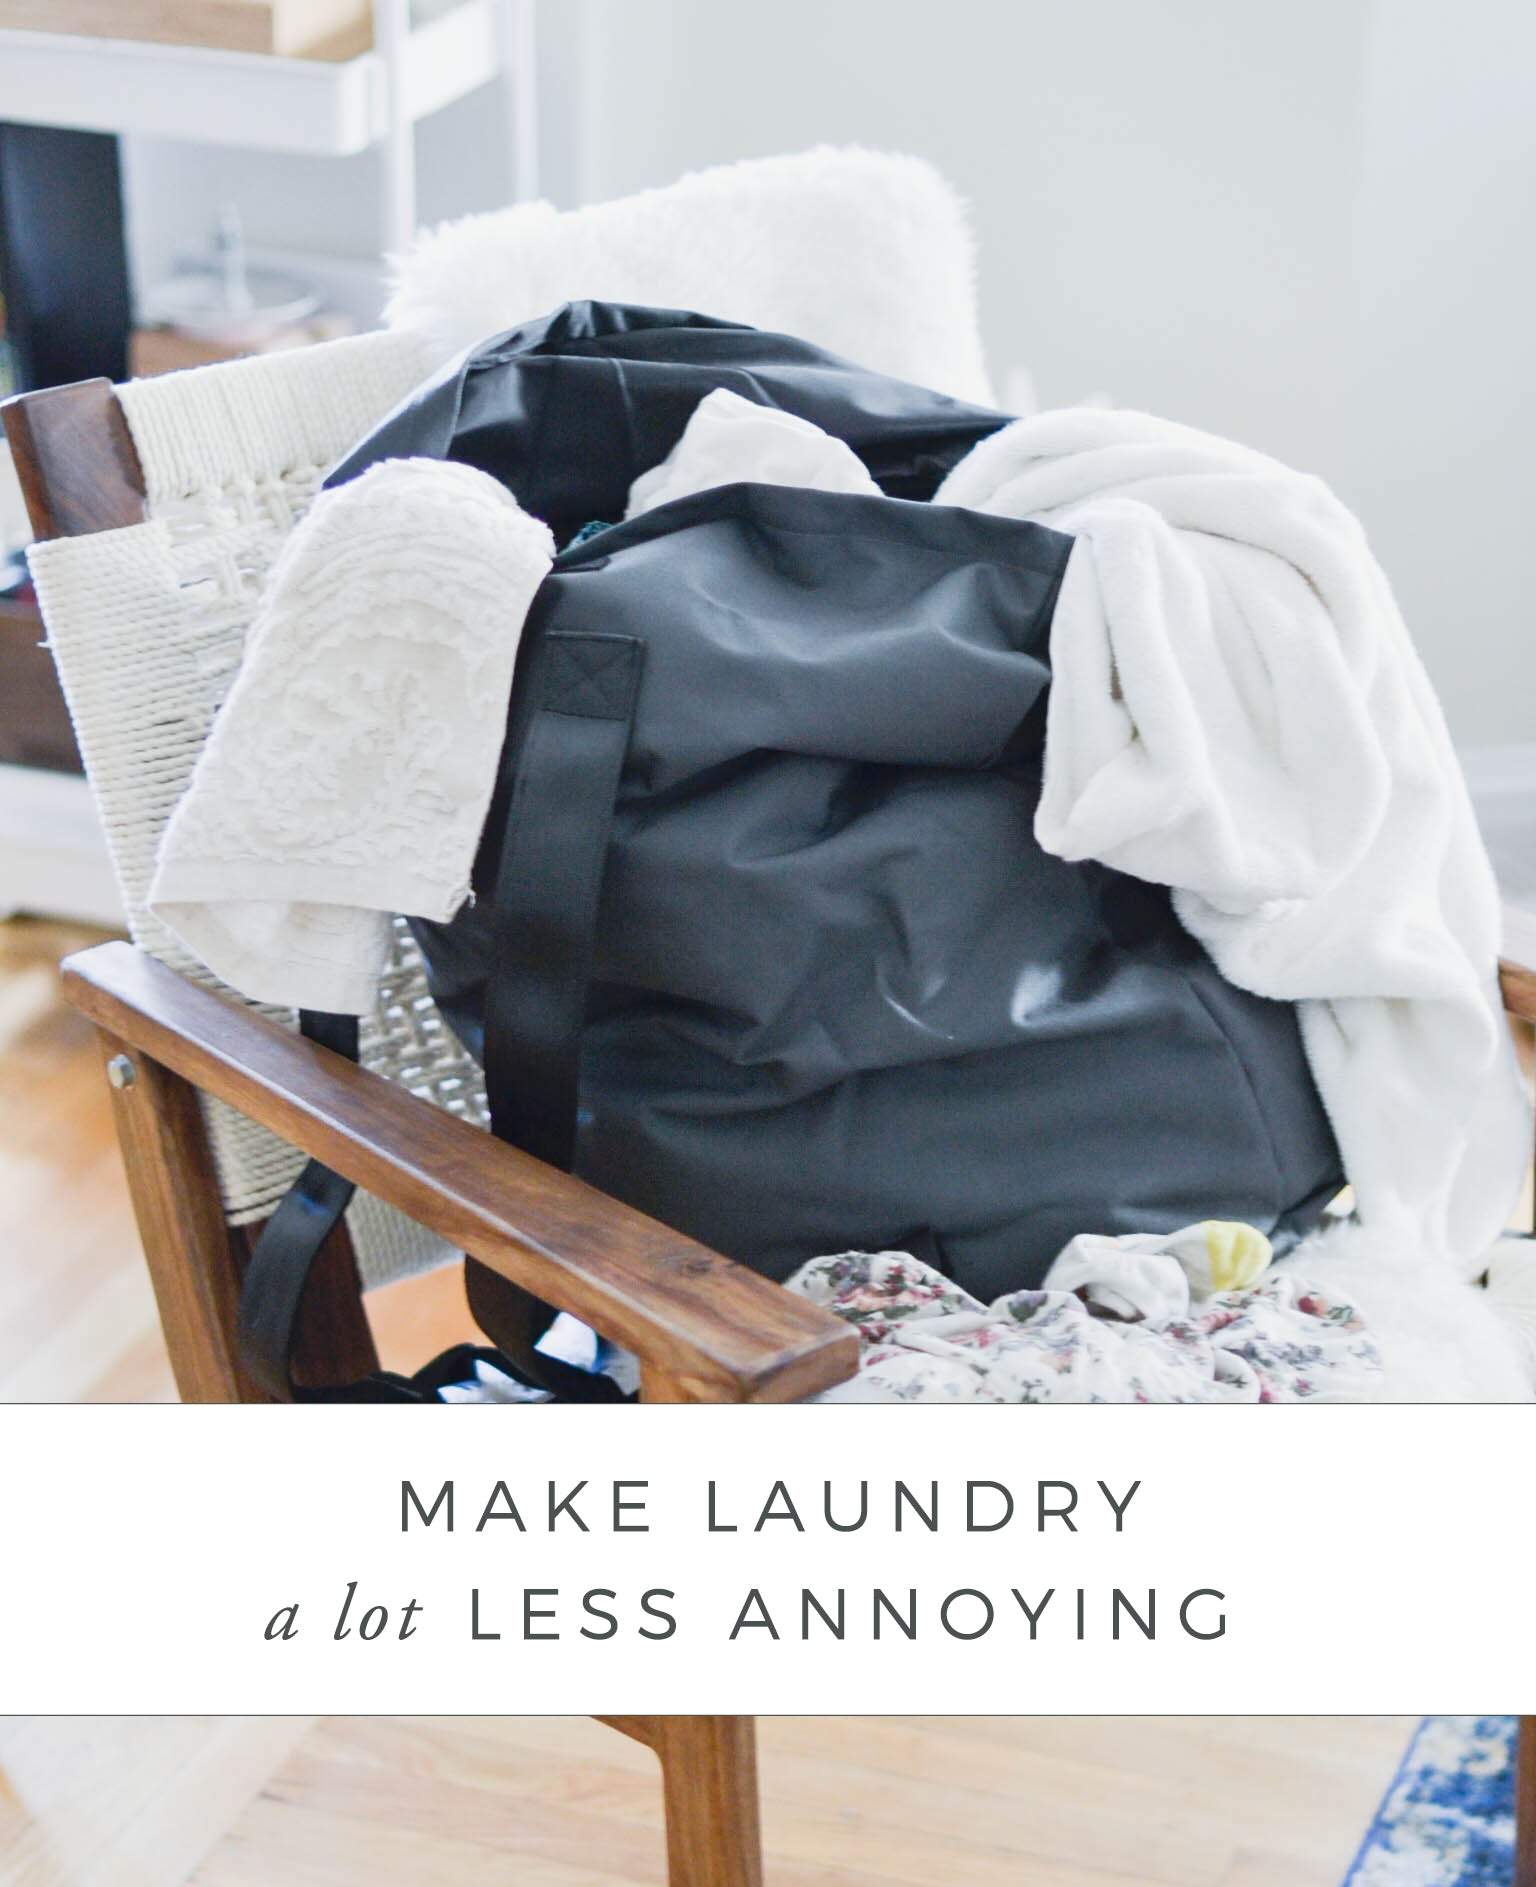 Making Laundry Less Annoying